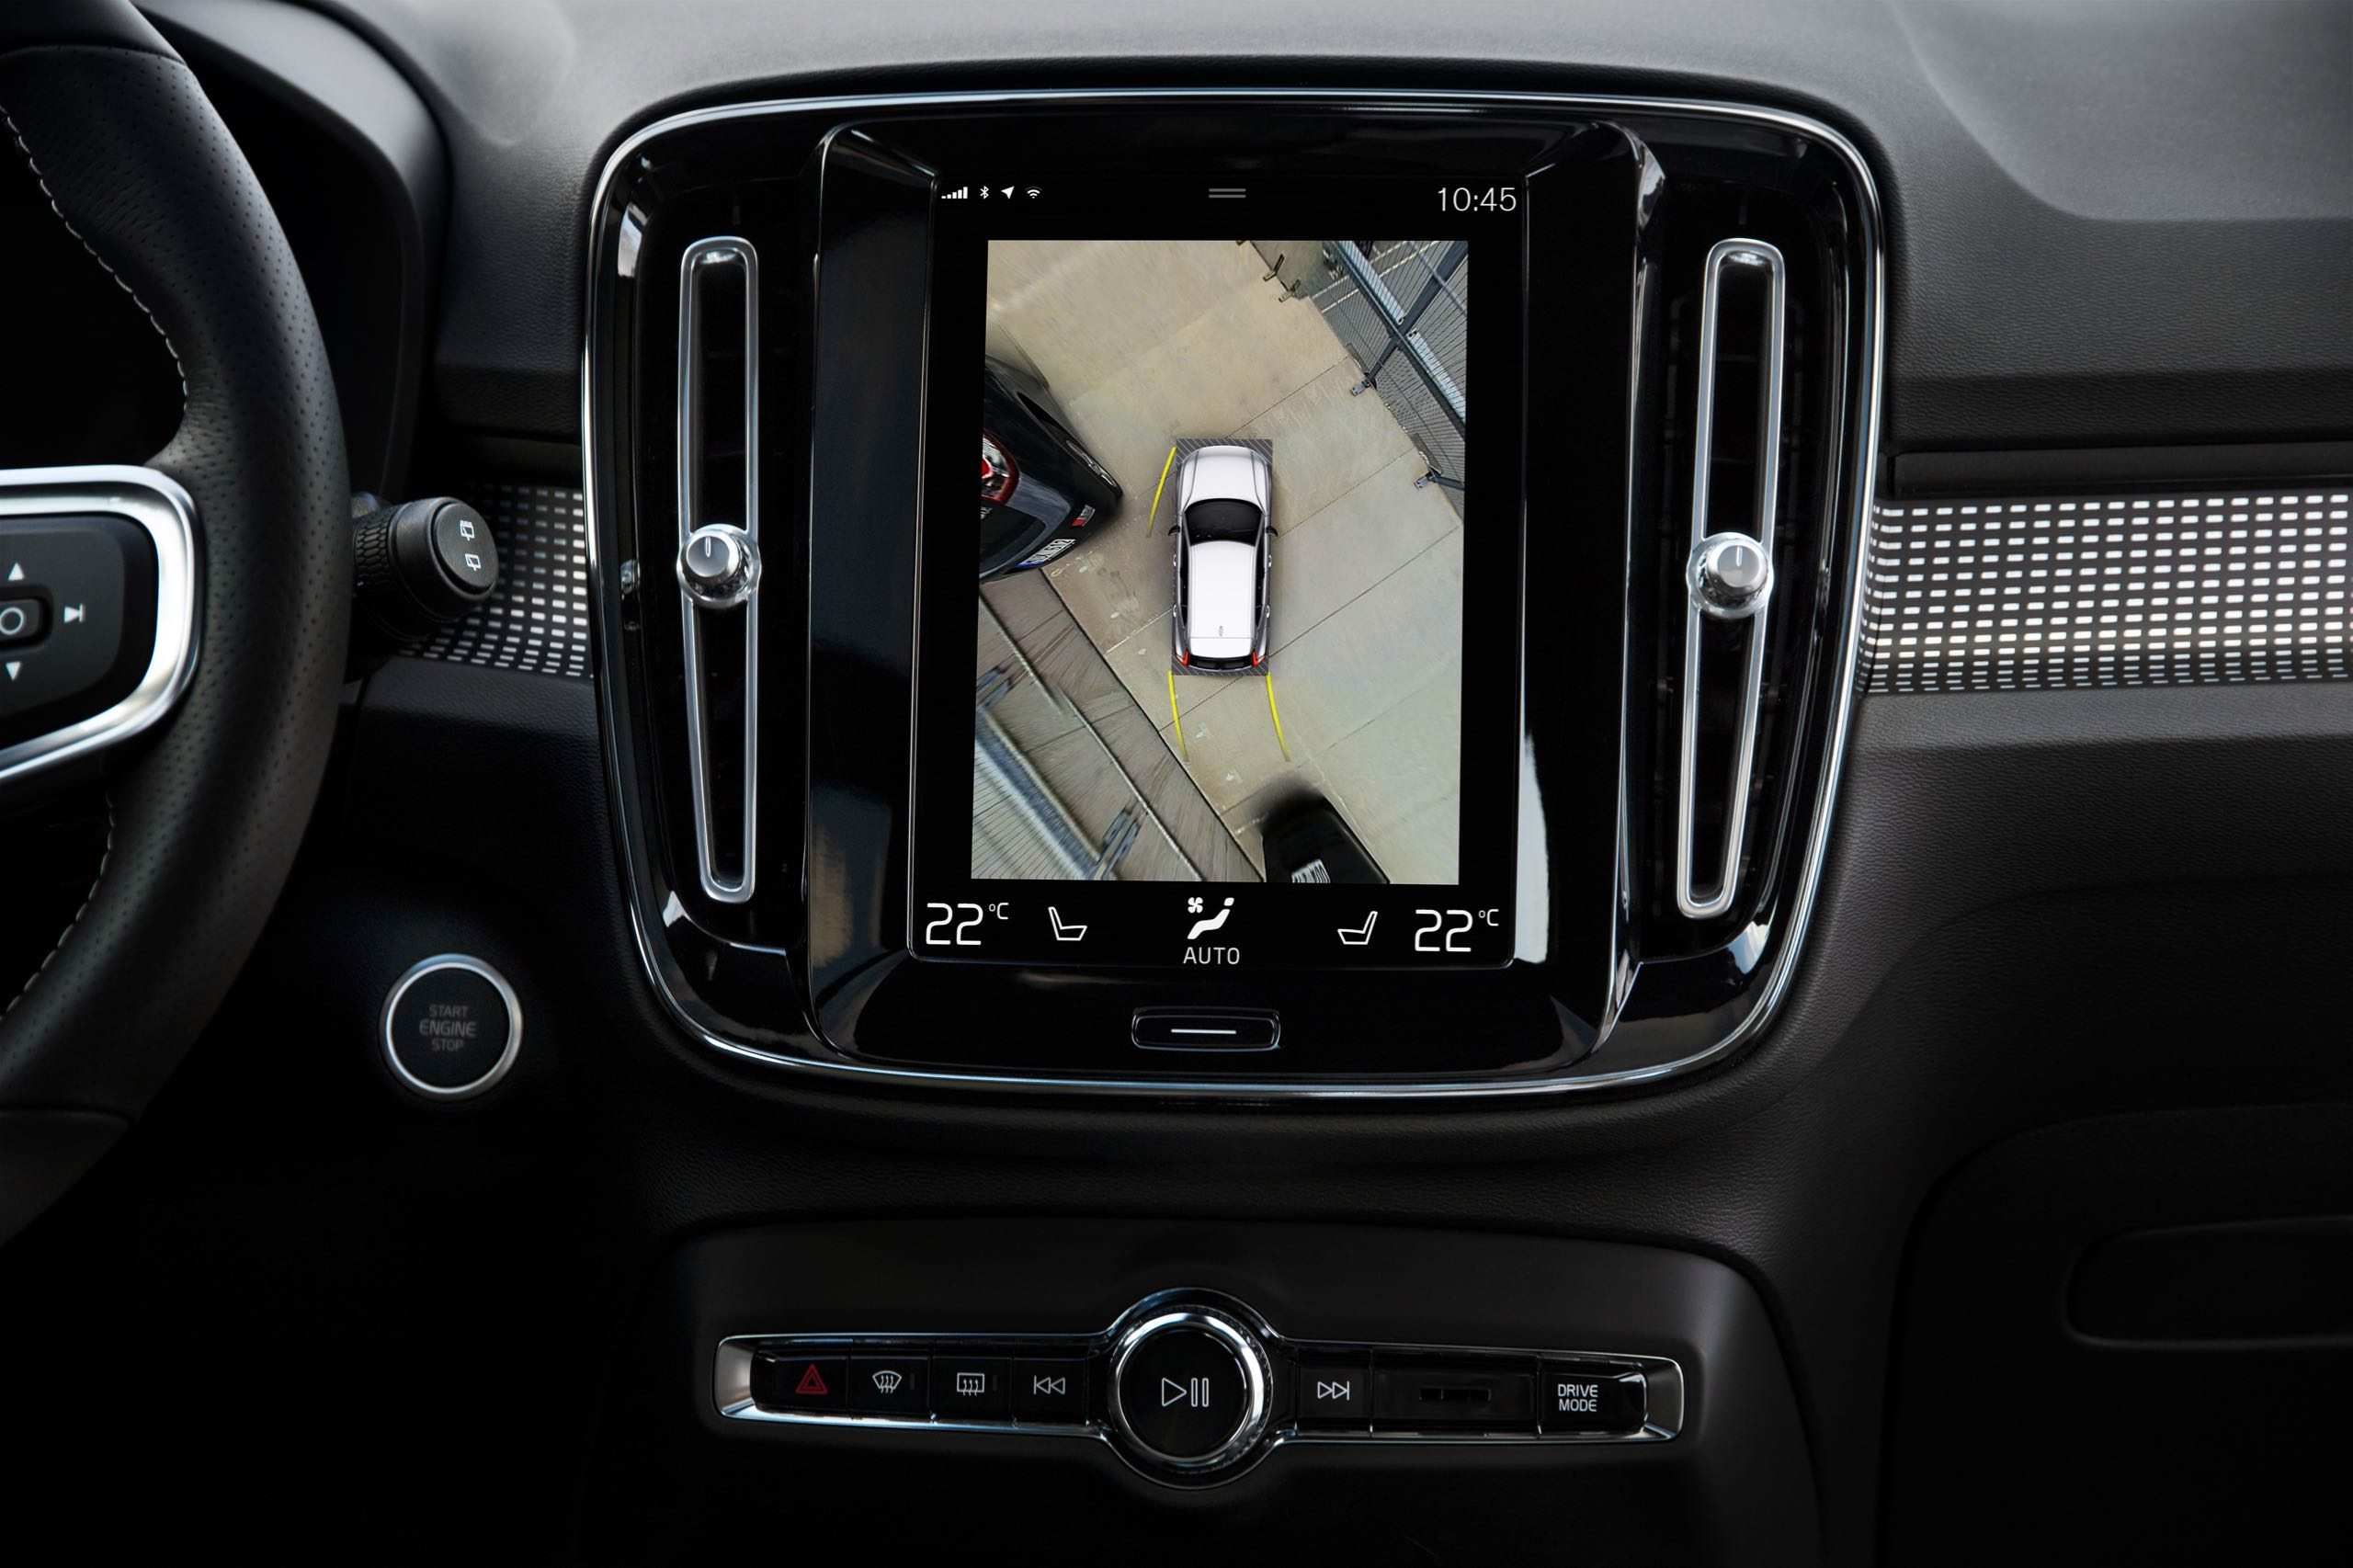 New Volvo XC40 360 Camera -  2017, 2018, 2018 New XC40, Detail, Images, Interior, New XC40, Technology